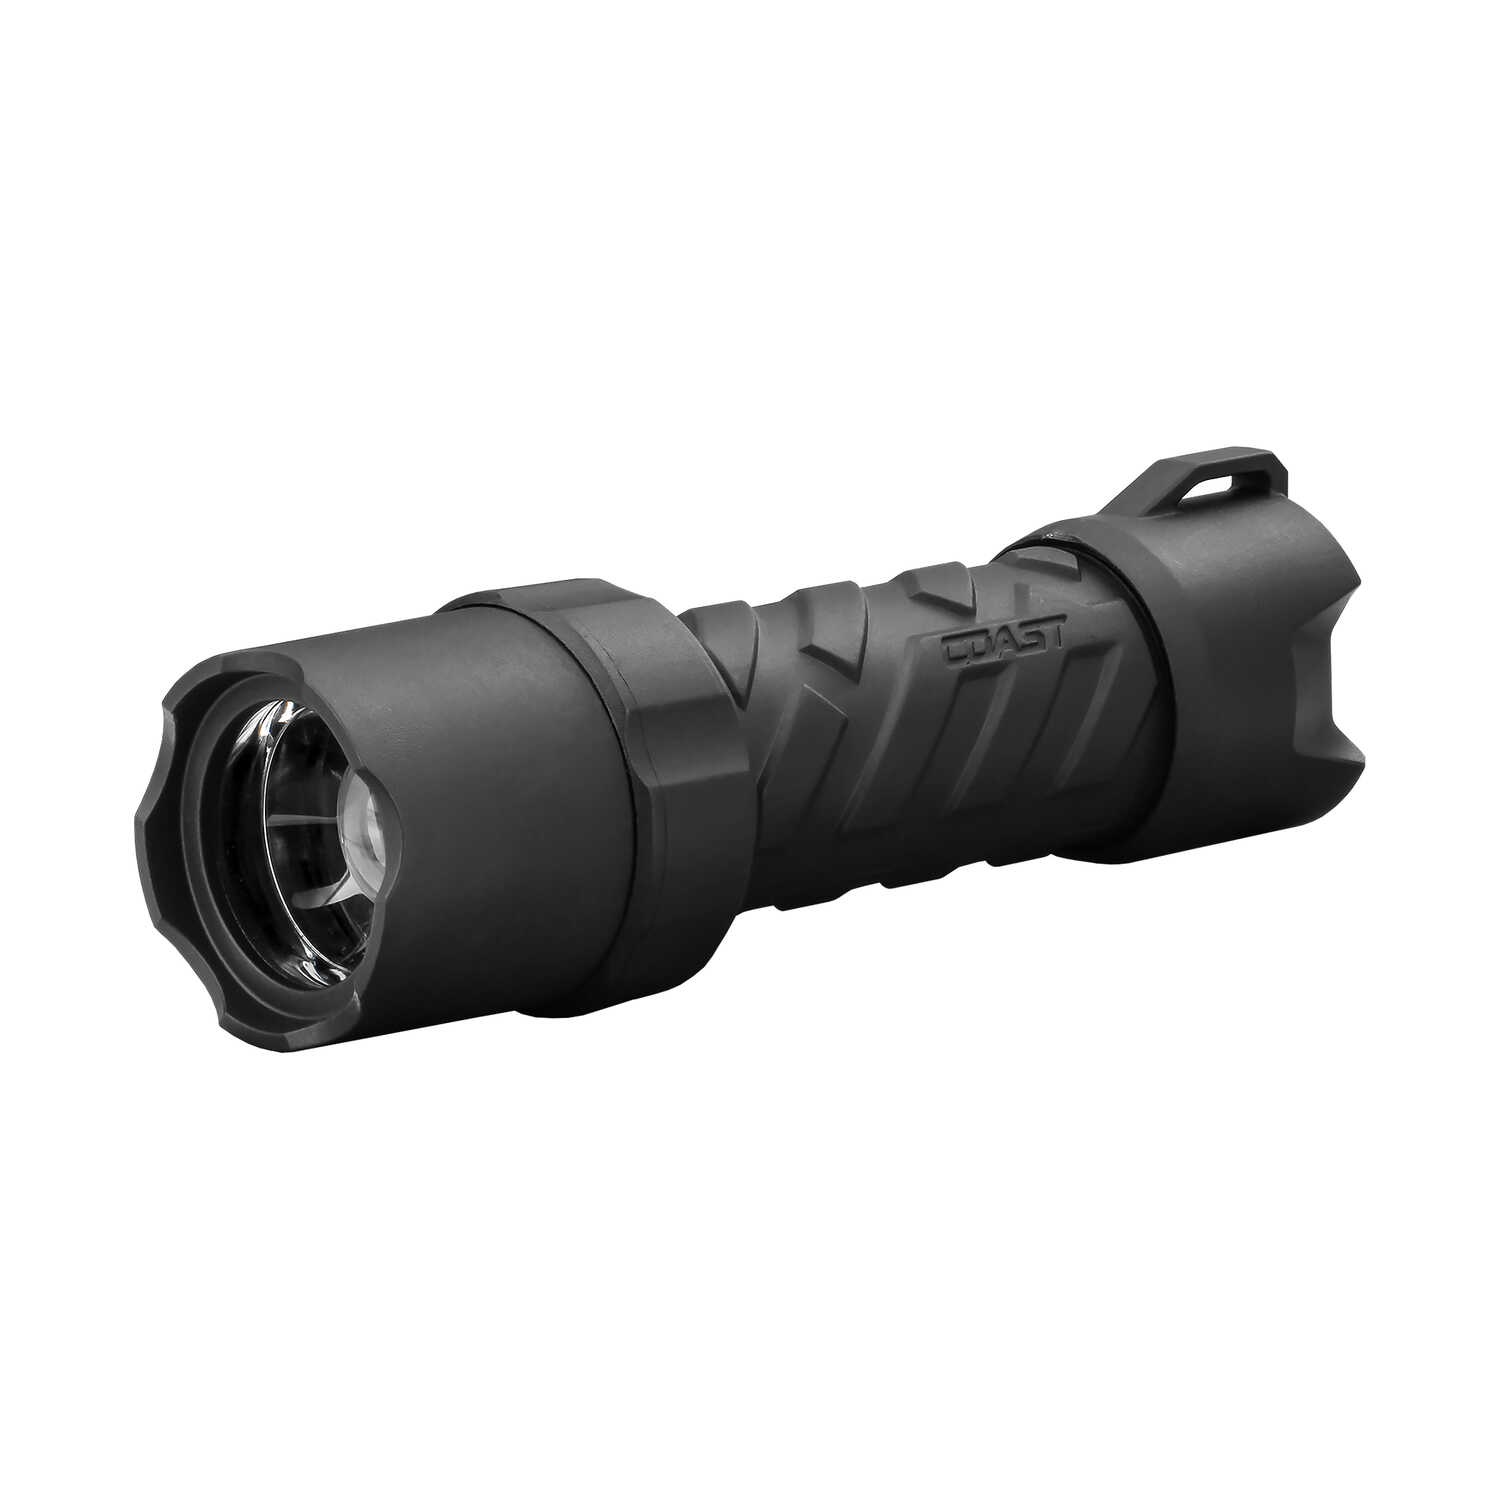 Coast  Polysteel 400  300 lumens Black  LED  Flashlight  AAA